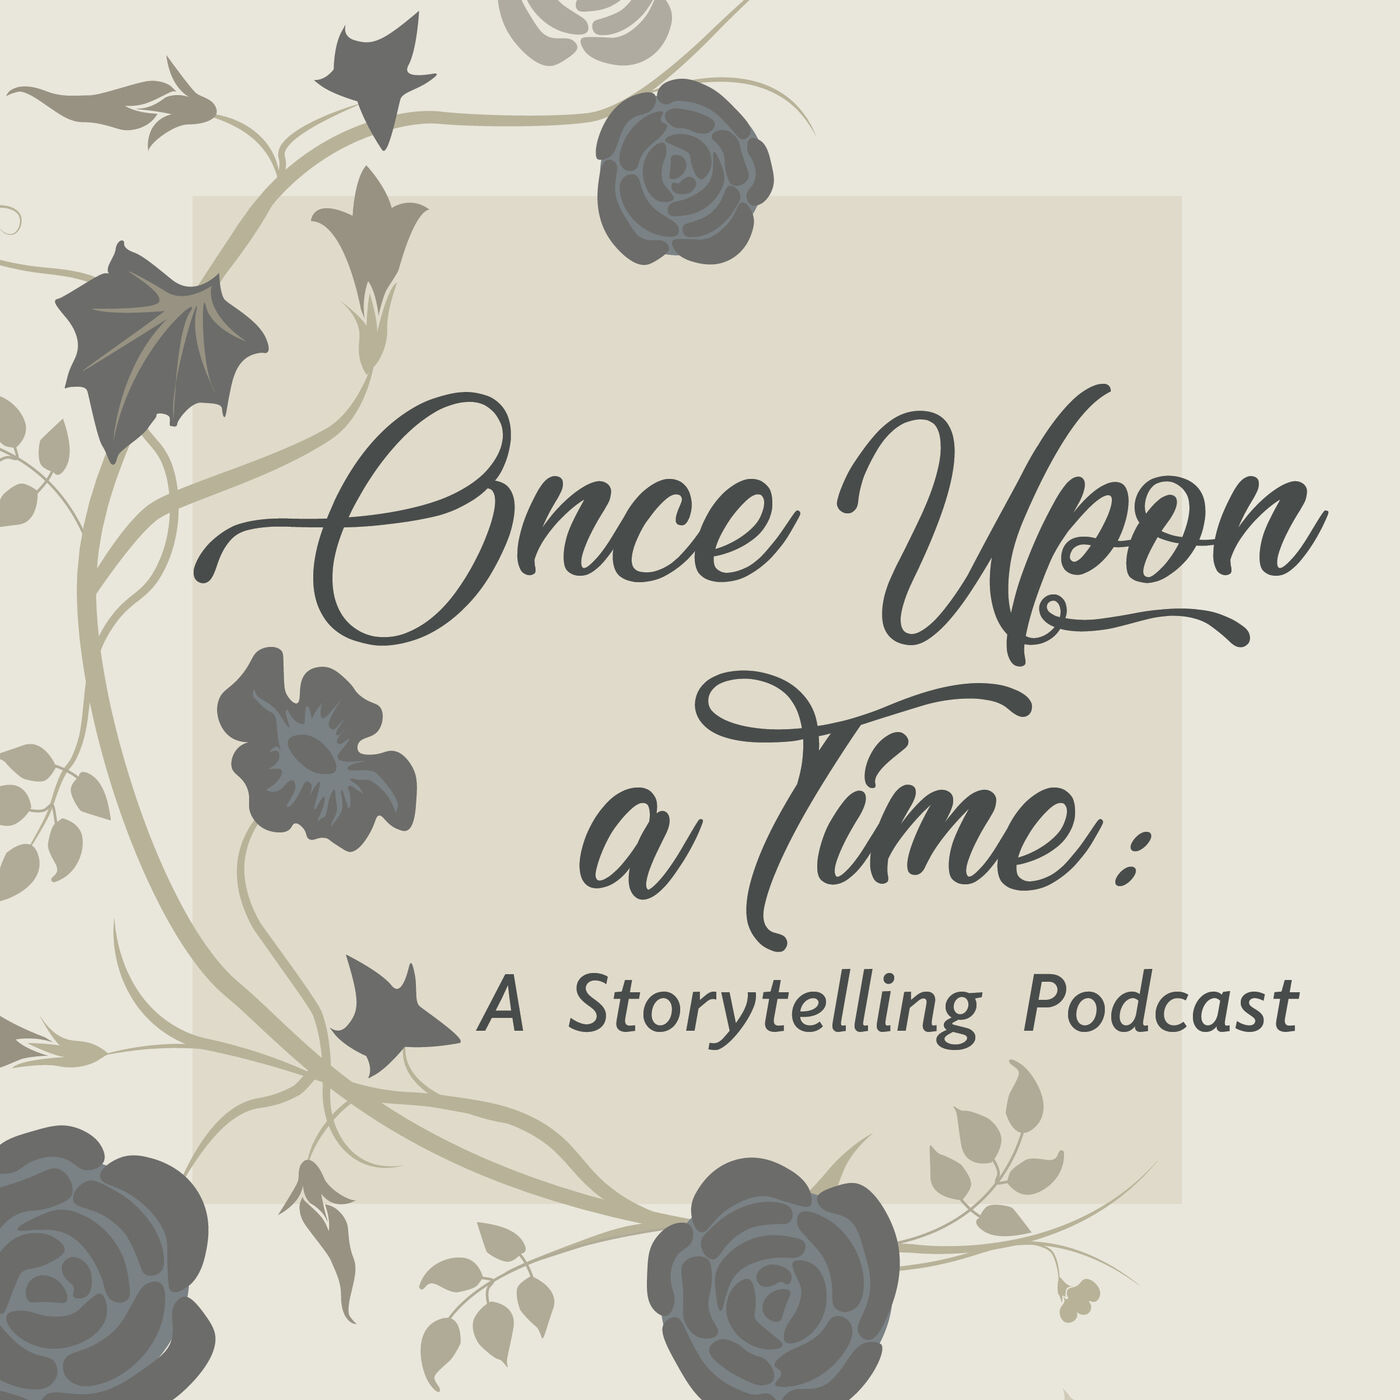 Once Upon A Time: A Storytelling Podcast